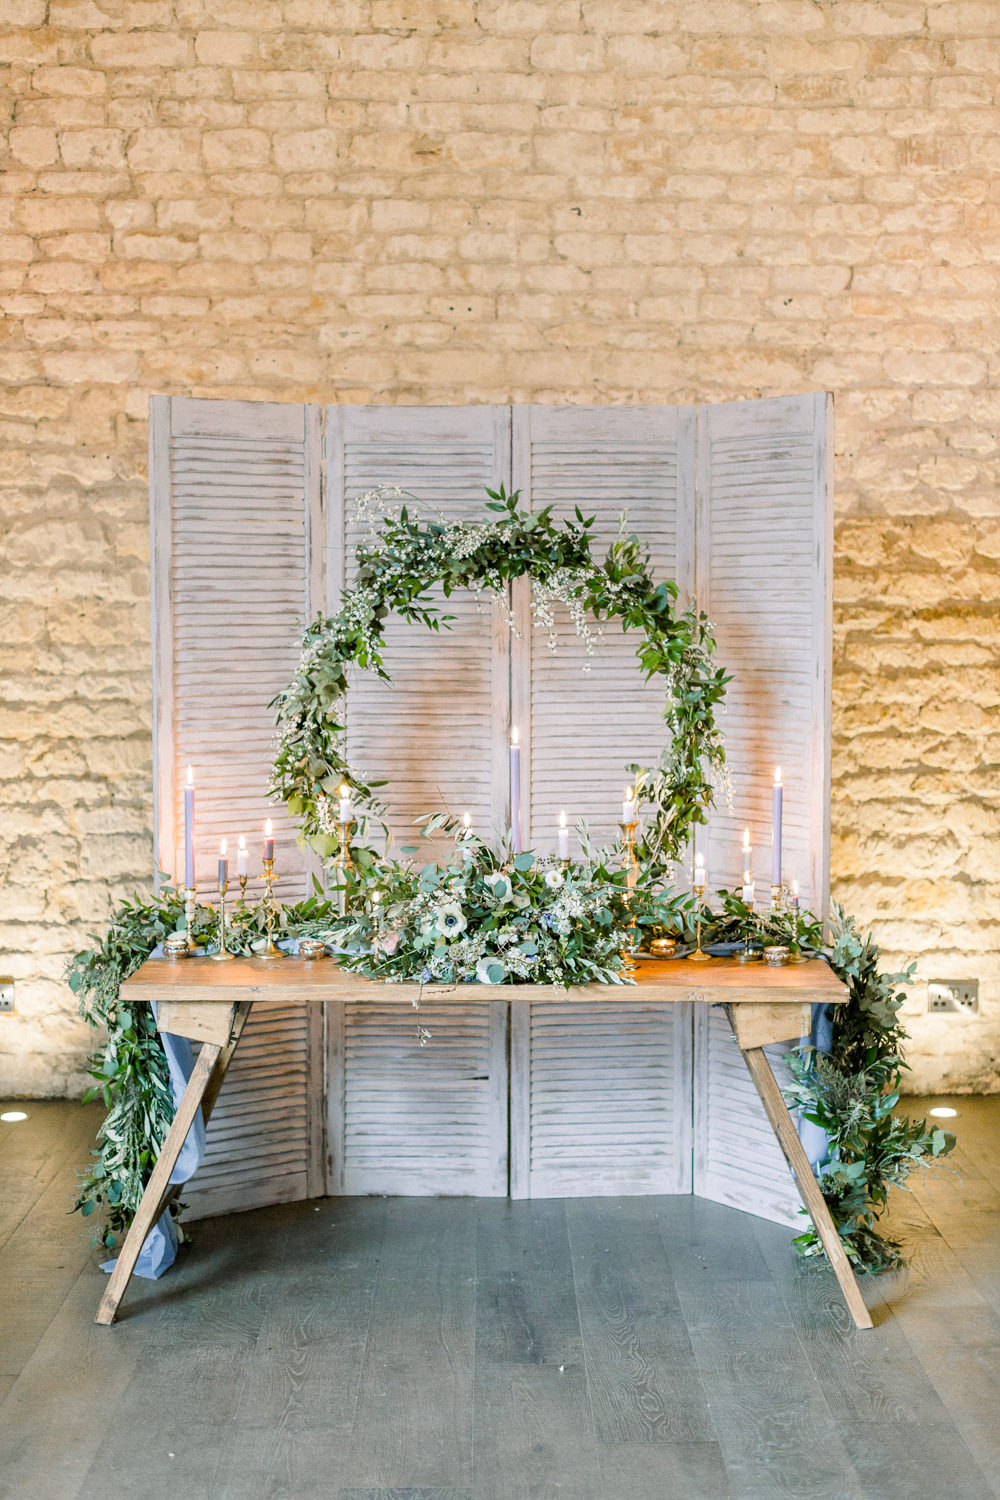 Hoop Wreaths Greenery Folliage Backdrop Table Tablescape Winter Blue Barn Wedding Ideas Joanna Briggs Photography